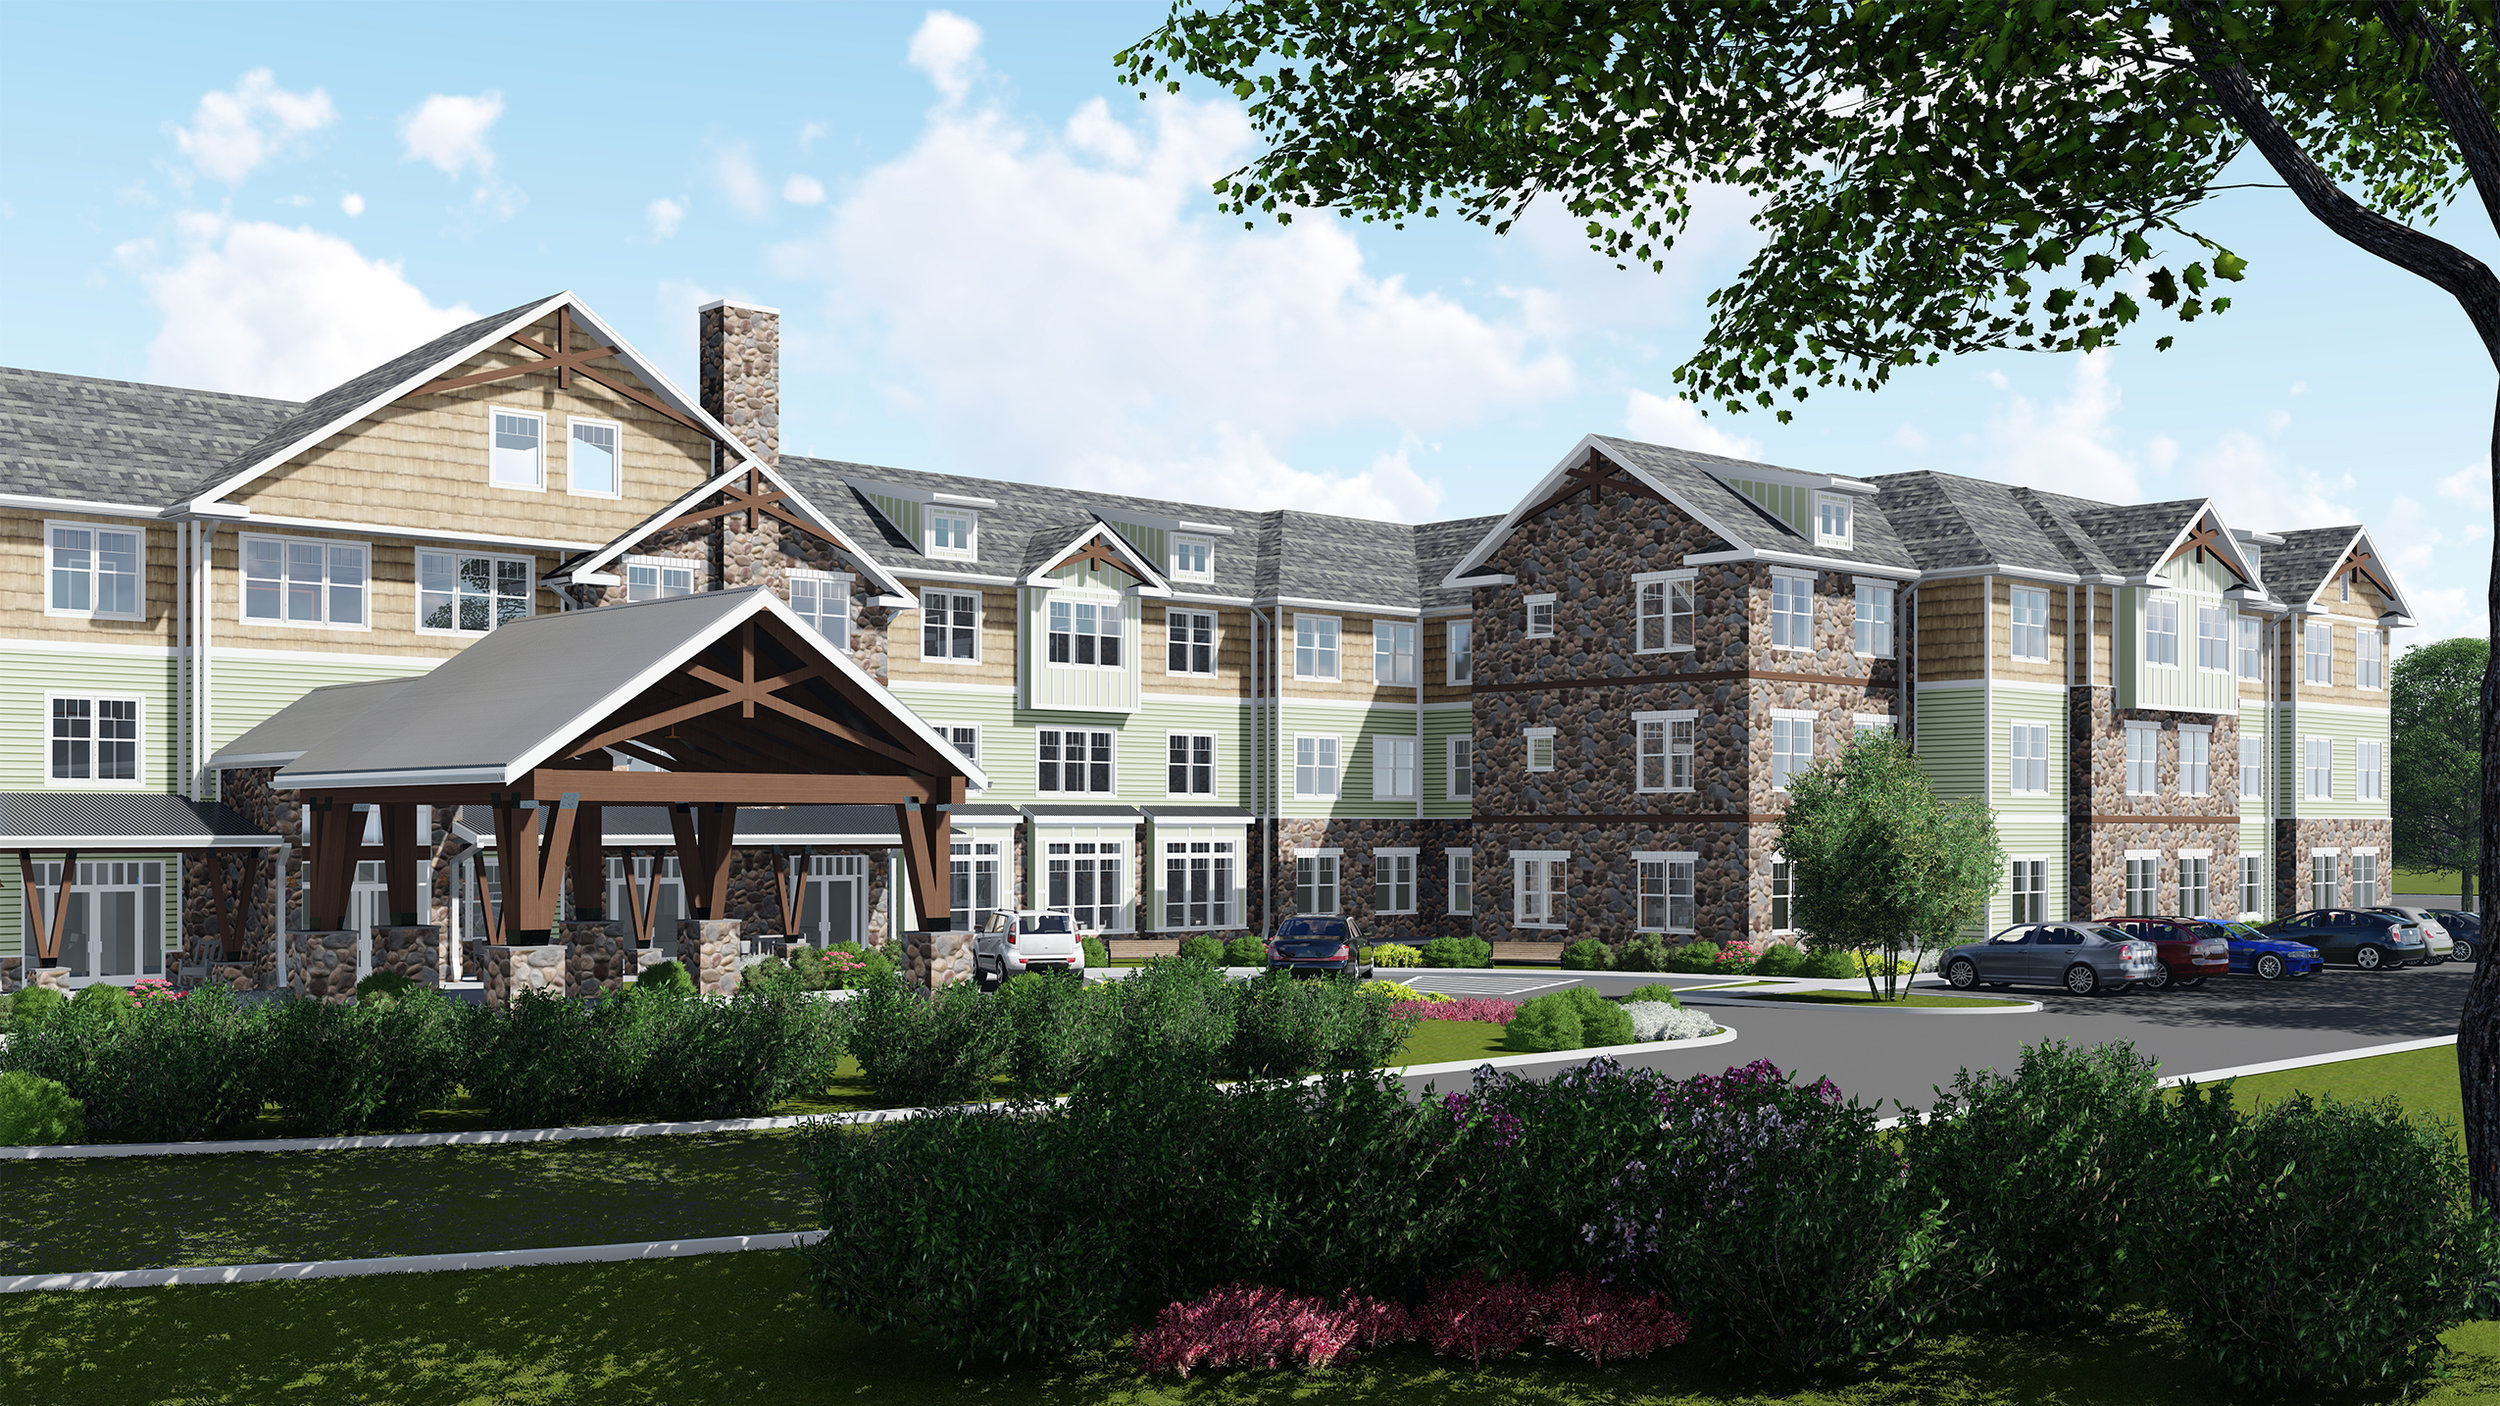 Built by March Construction, Capitol Seniros Housing Project in Greenburgh New York